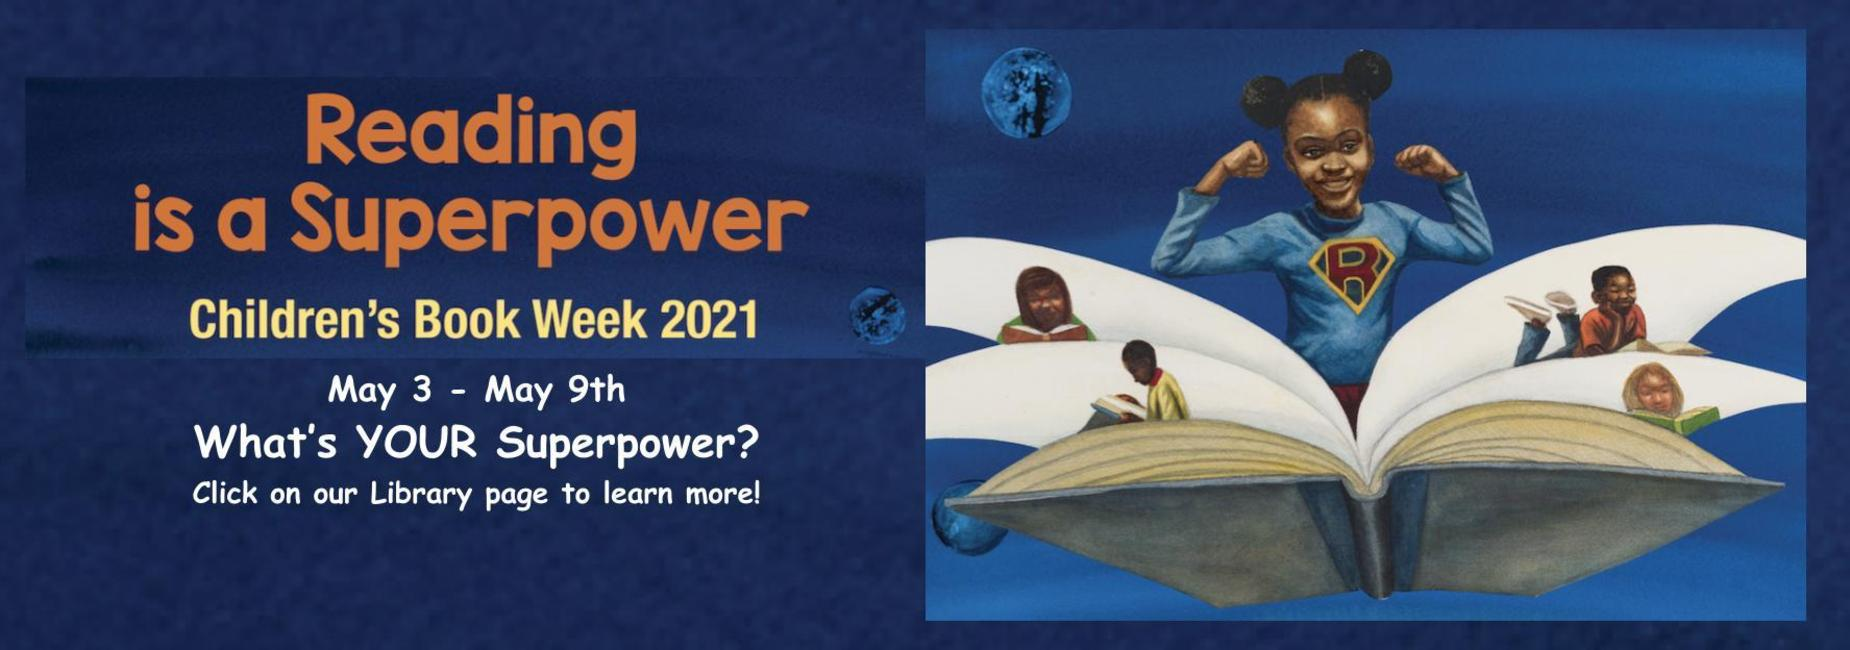 Reading in a Superpower. Children's Book Week 2021. May 3-9th, 2021. What is your superpower? Click on our library page to learn more.